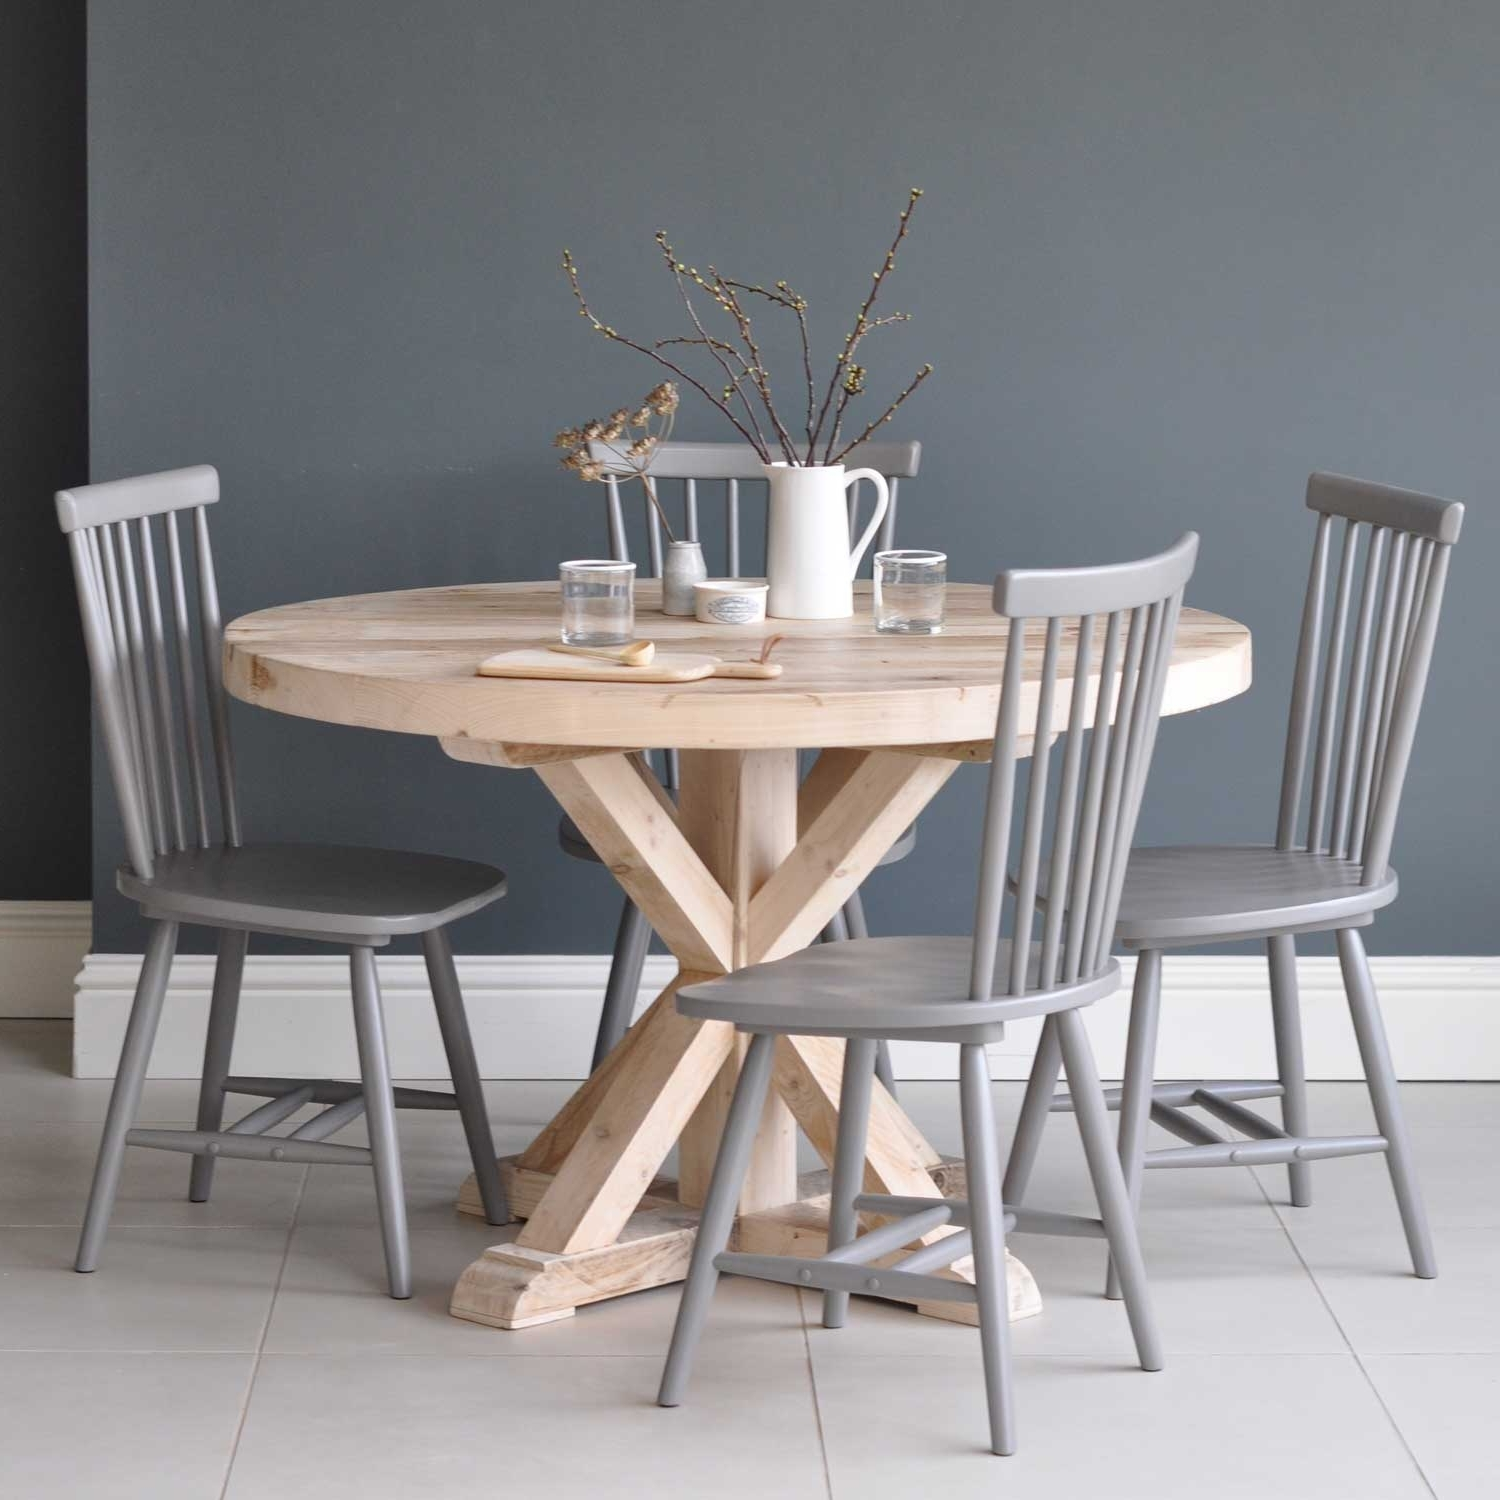 Large Circular Dining Tables With Fashionable Circular Reclaimed Wood Round Dining Table – Home Barn Vintage (View 12 of 25)